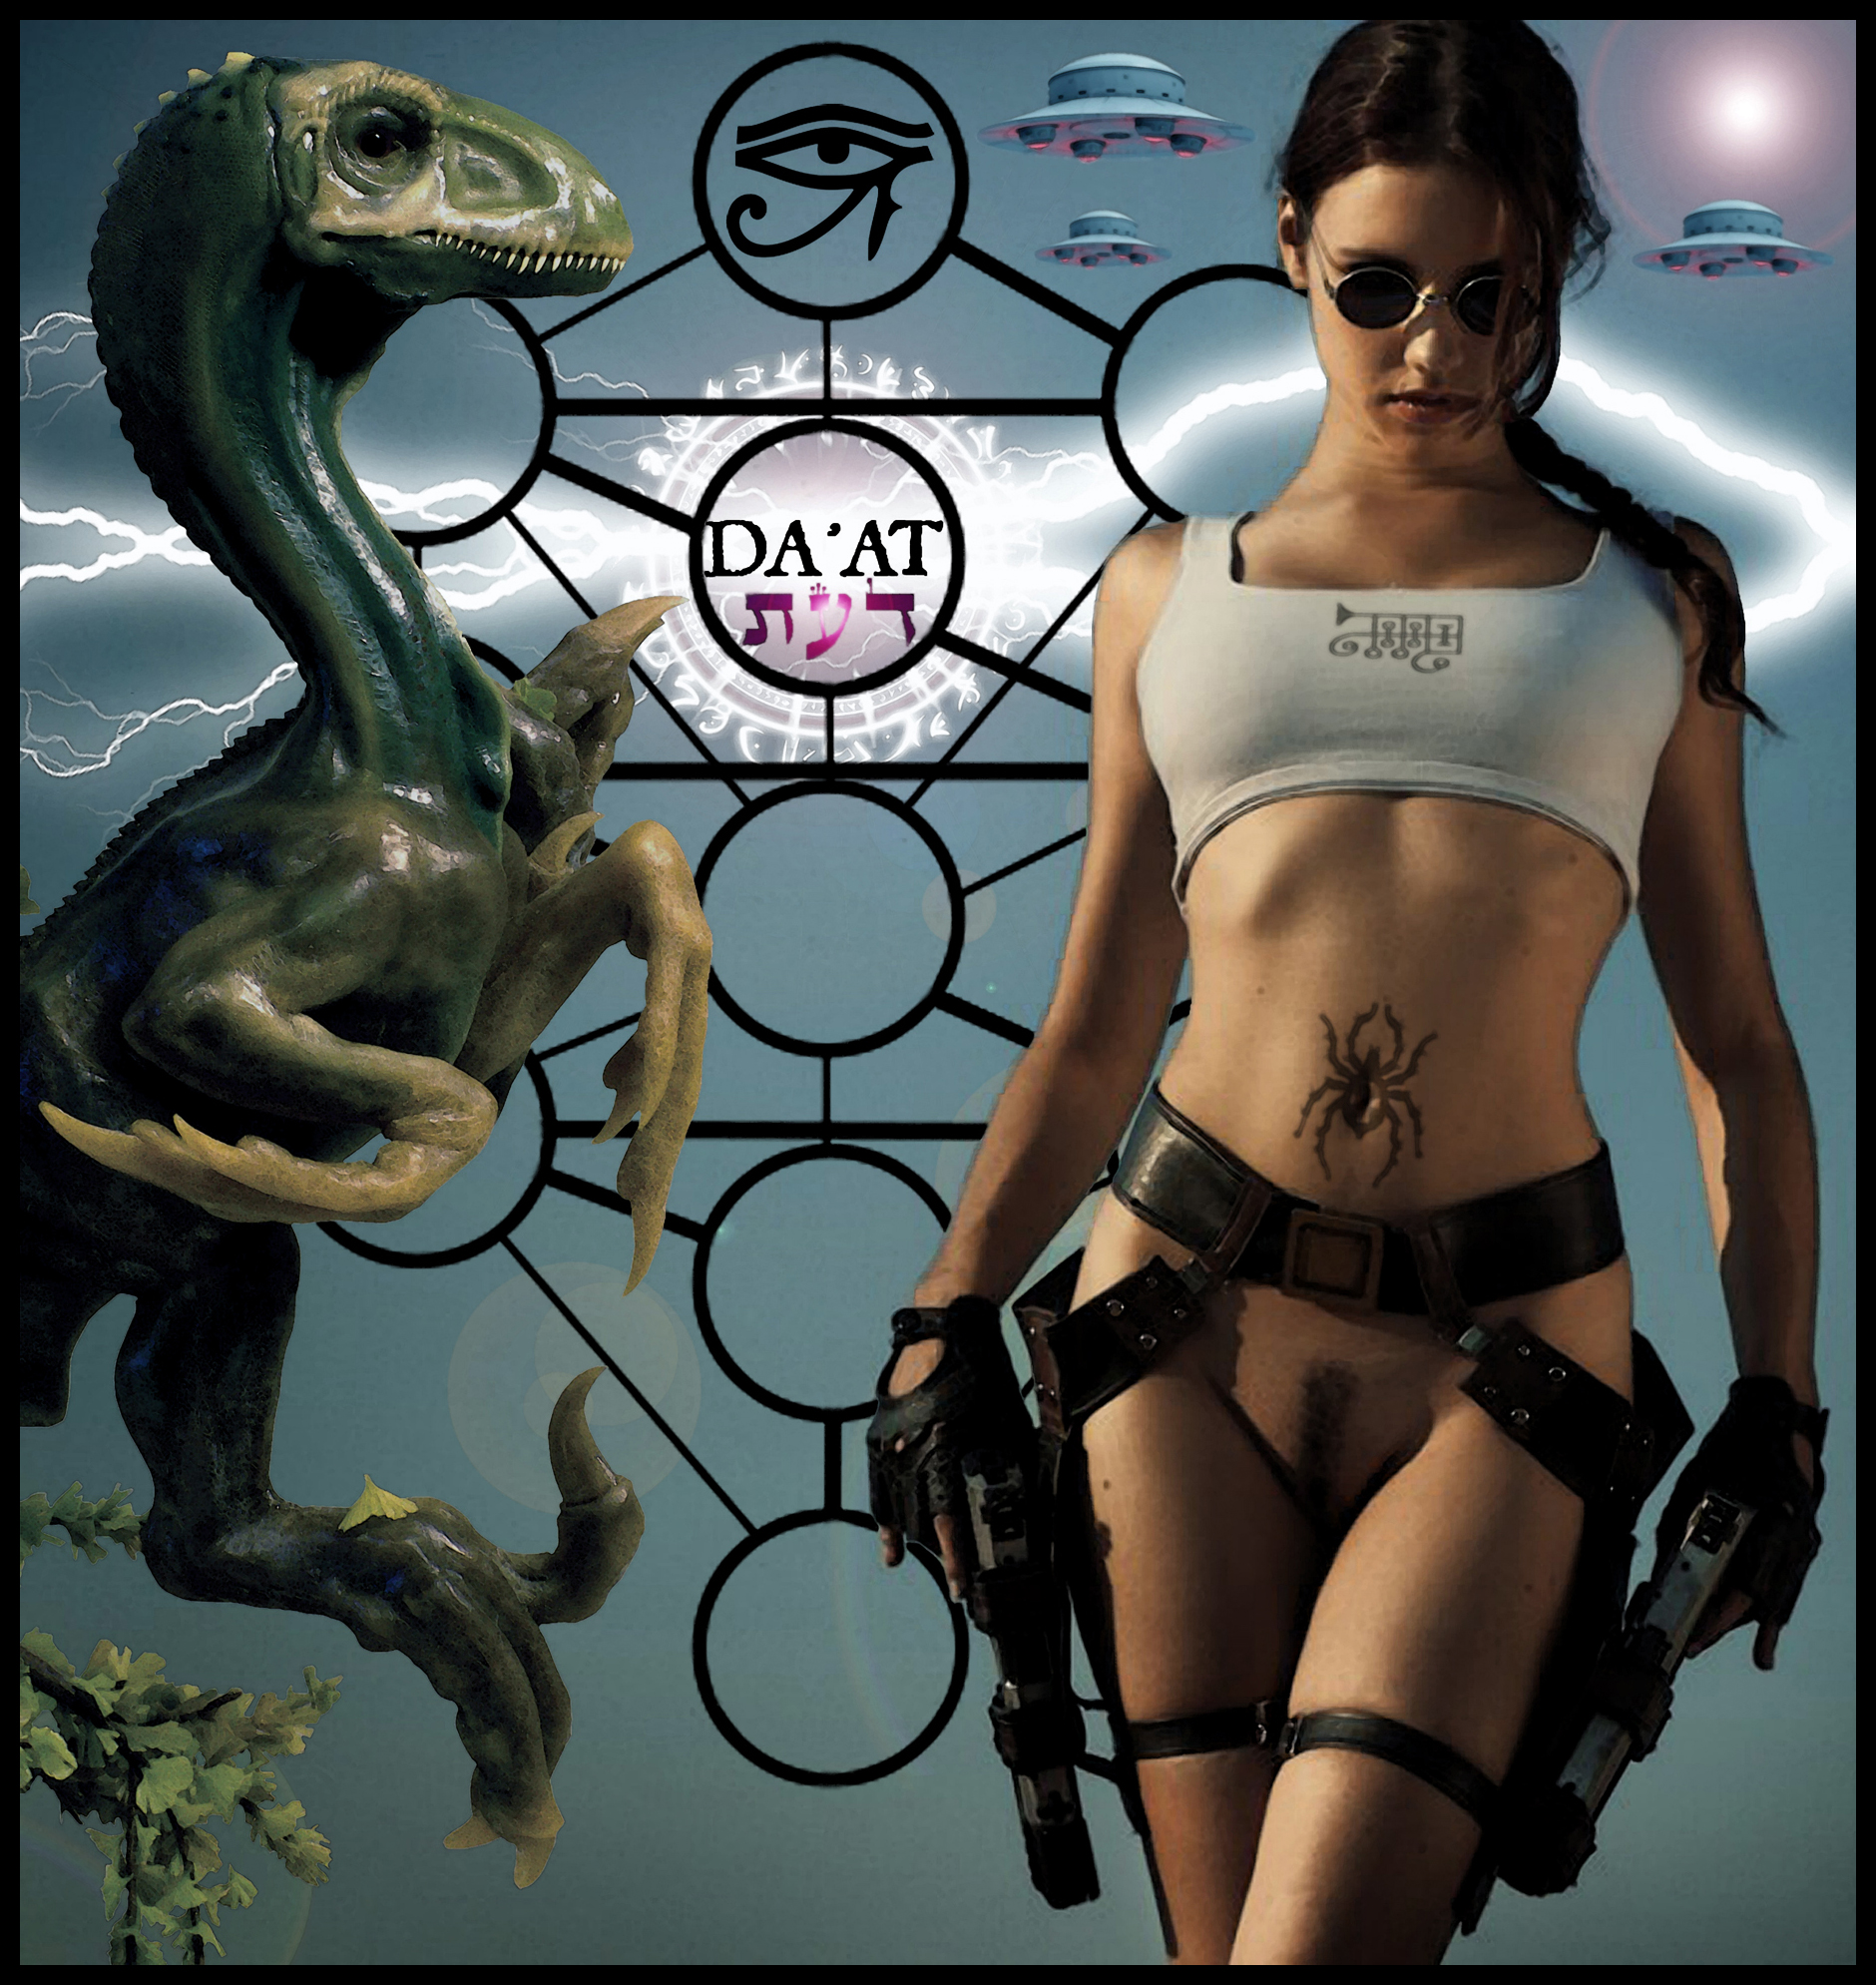 Lara croft 3d alien adult movies